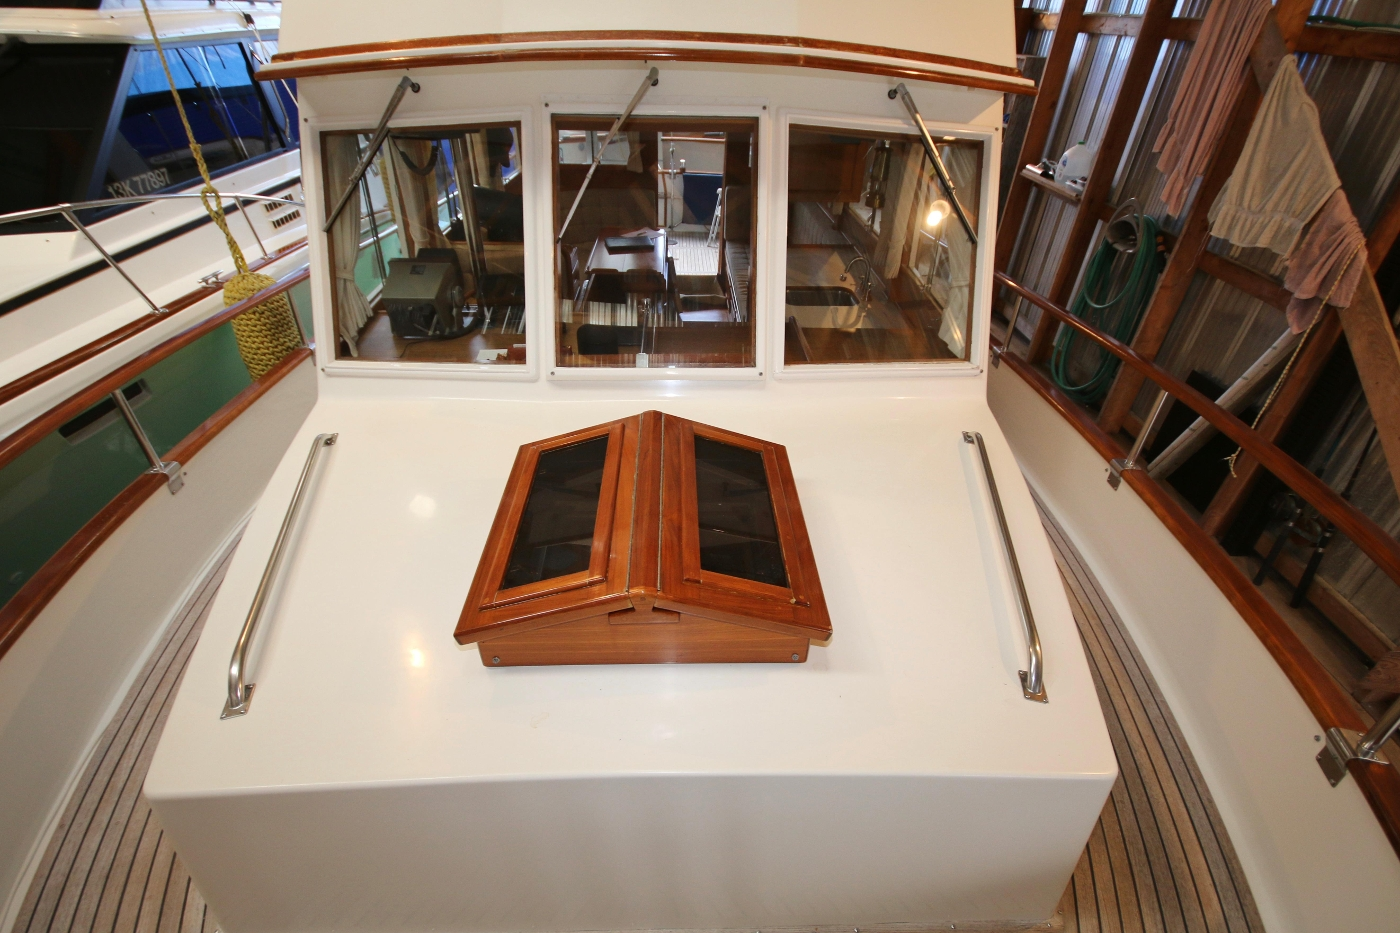 1988 Grand Banks 32, Classic Teak Hatch Cover on Cabin